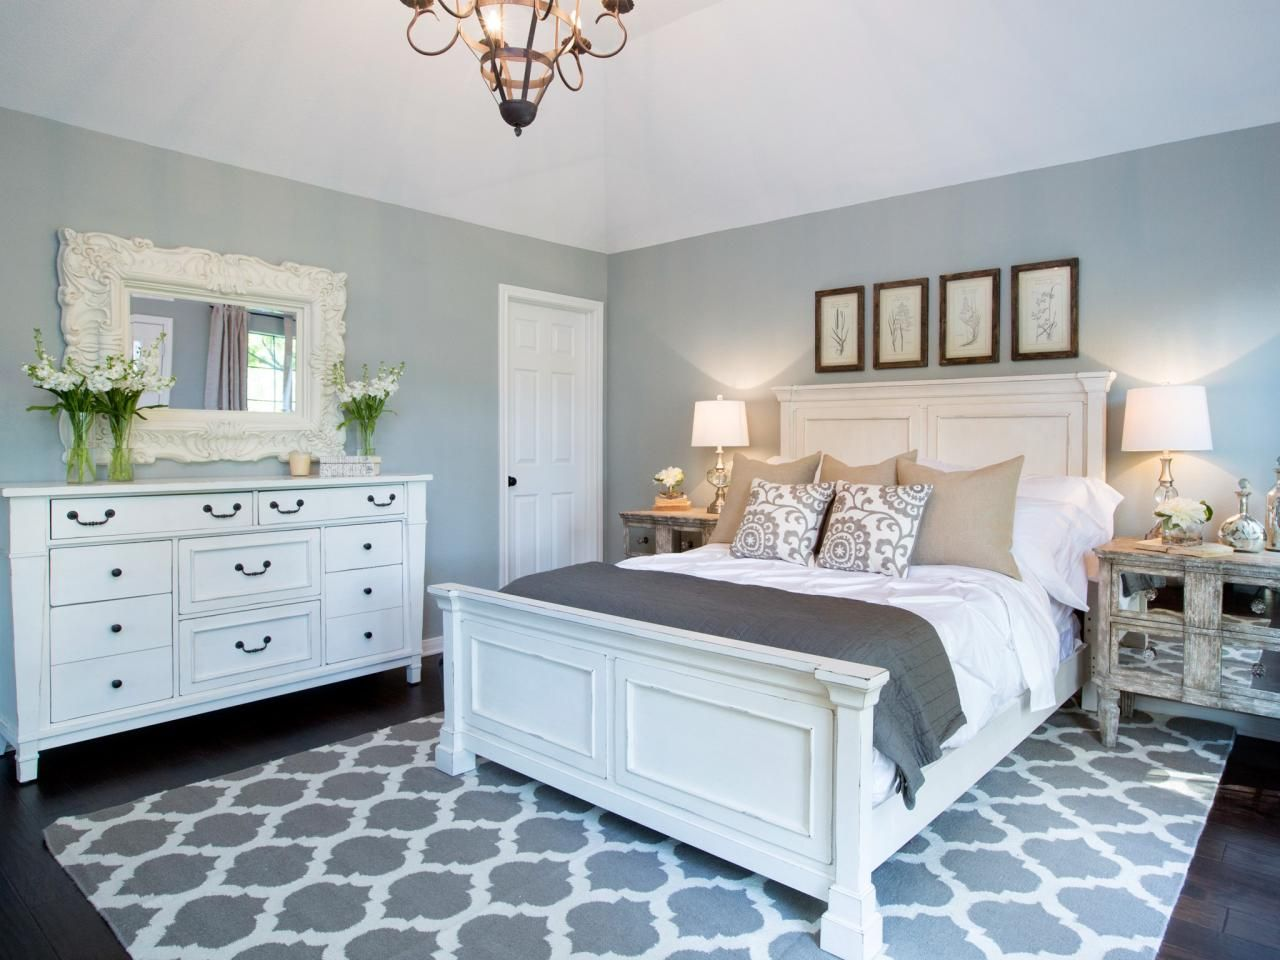 Master Bedroom Ideas fixer upper: yours, mine, ours and a home on the river | joanna